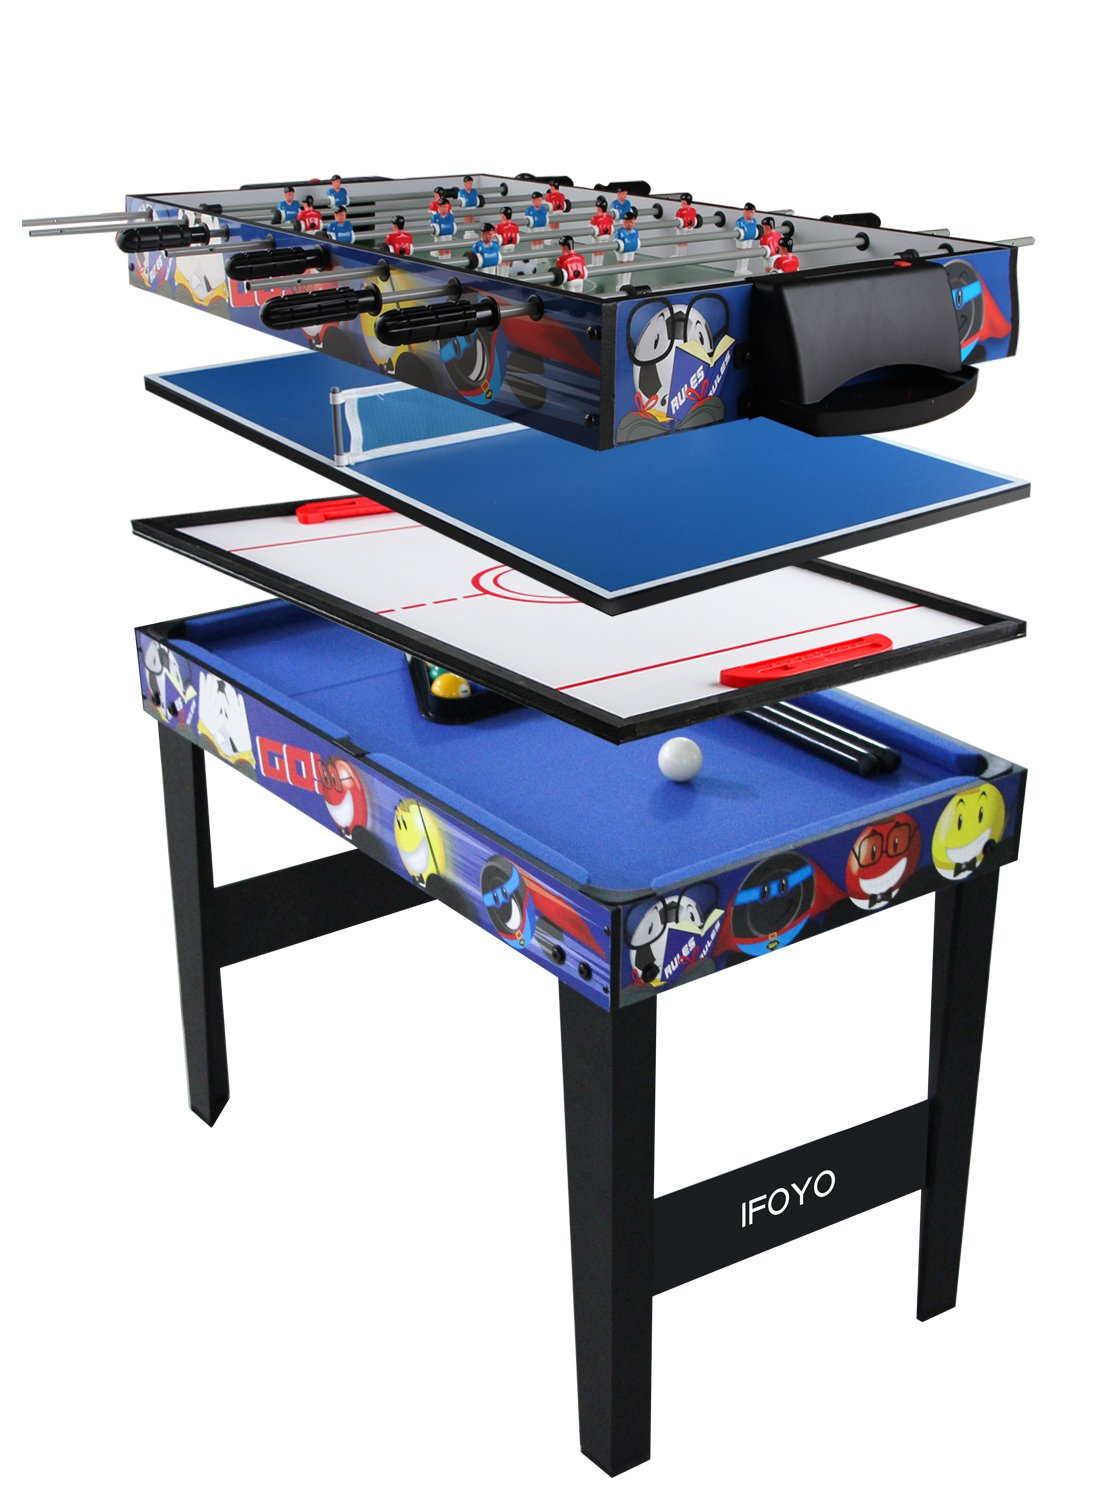 IF 3ft Combination Ping Pong Table with Foosball Ice Hockey Billiard Table Top, Father's Day Gift